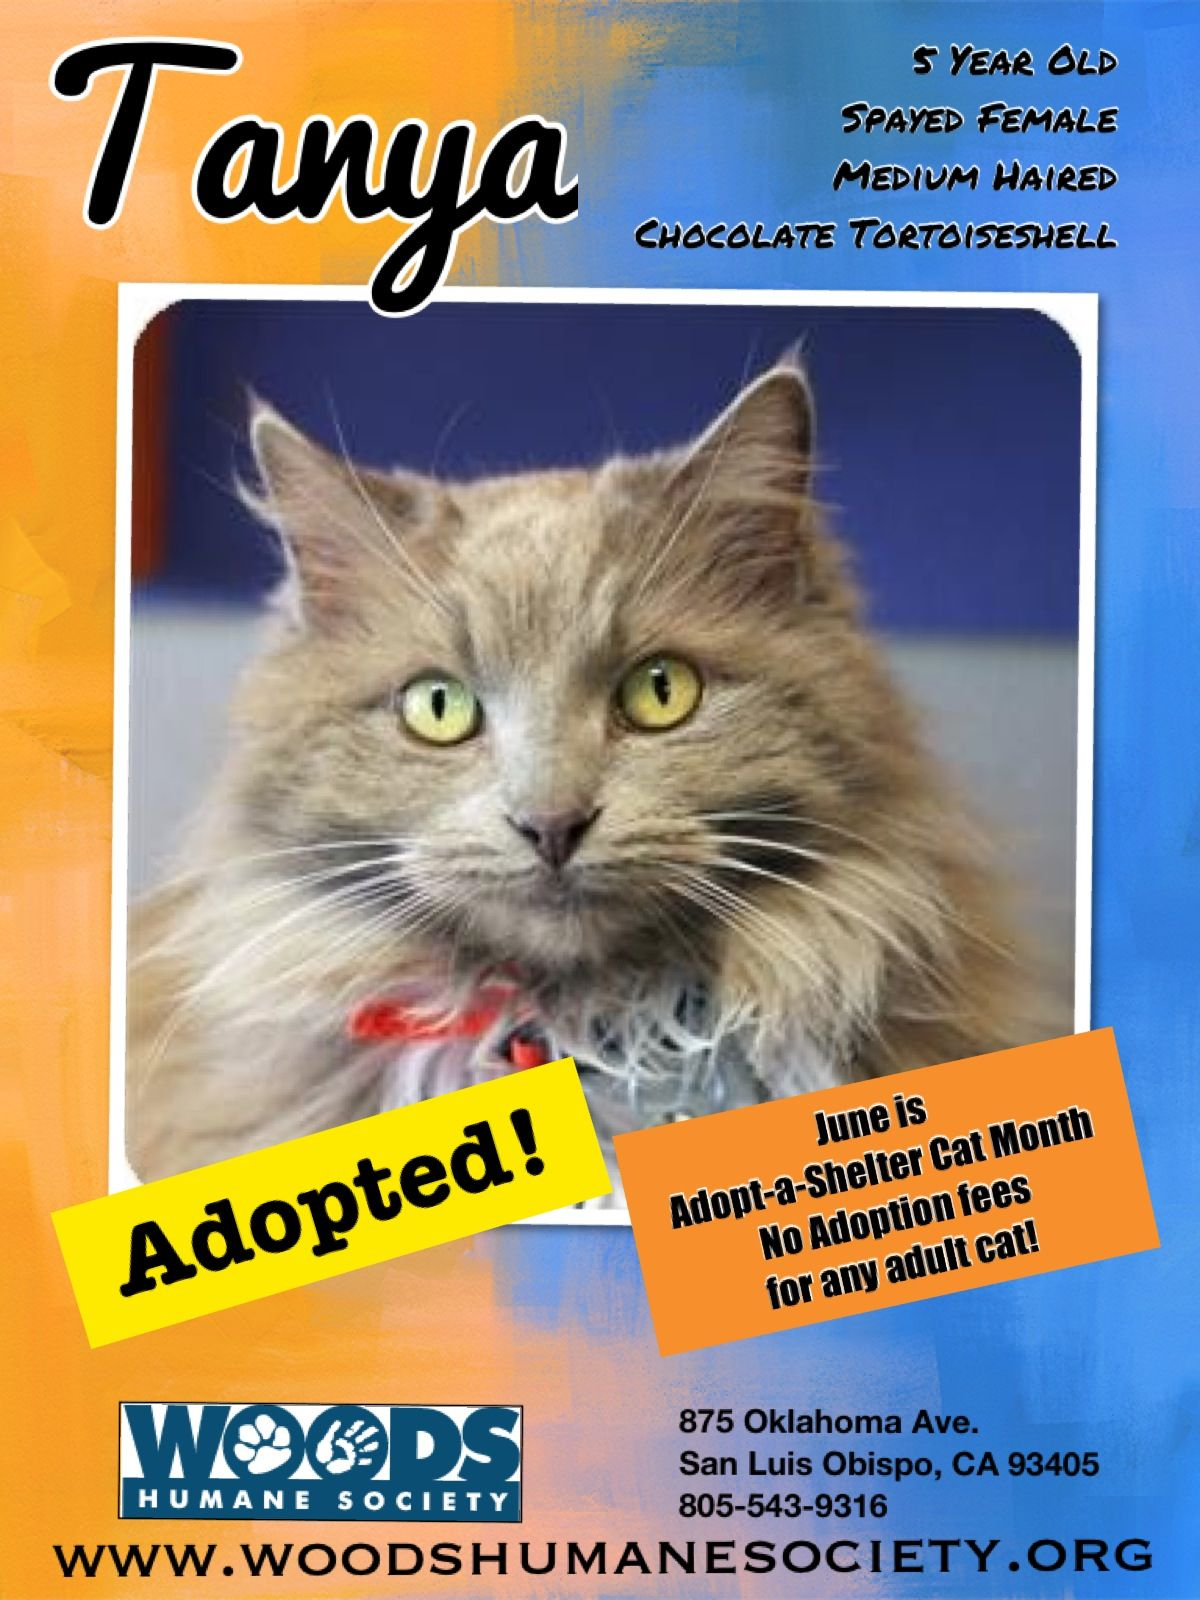 Adopted! June is AdoptaShelter Cat Month No Adoption